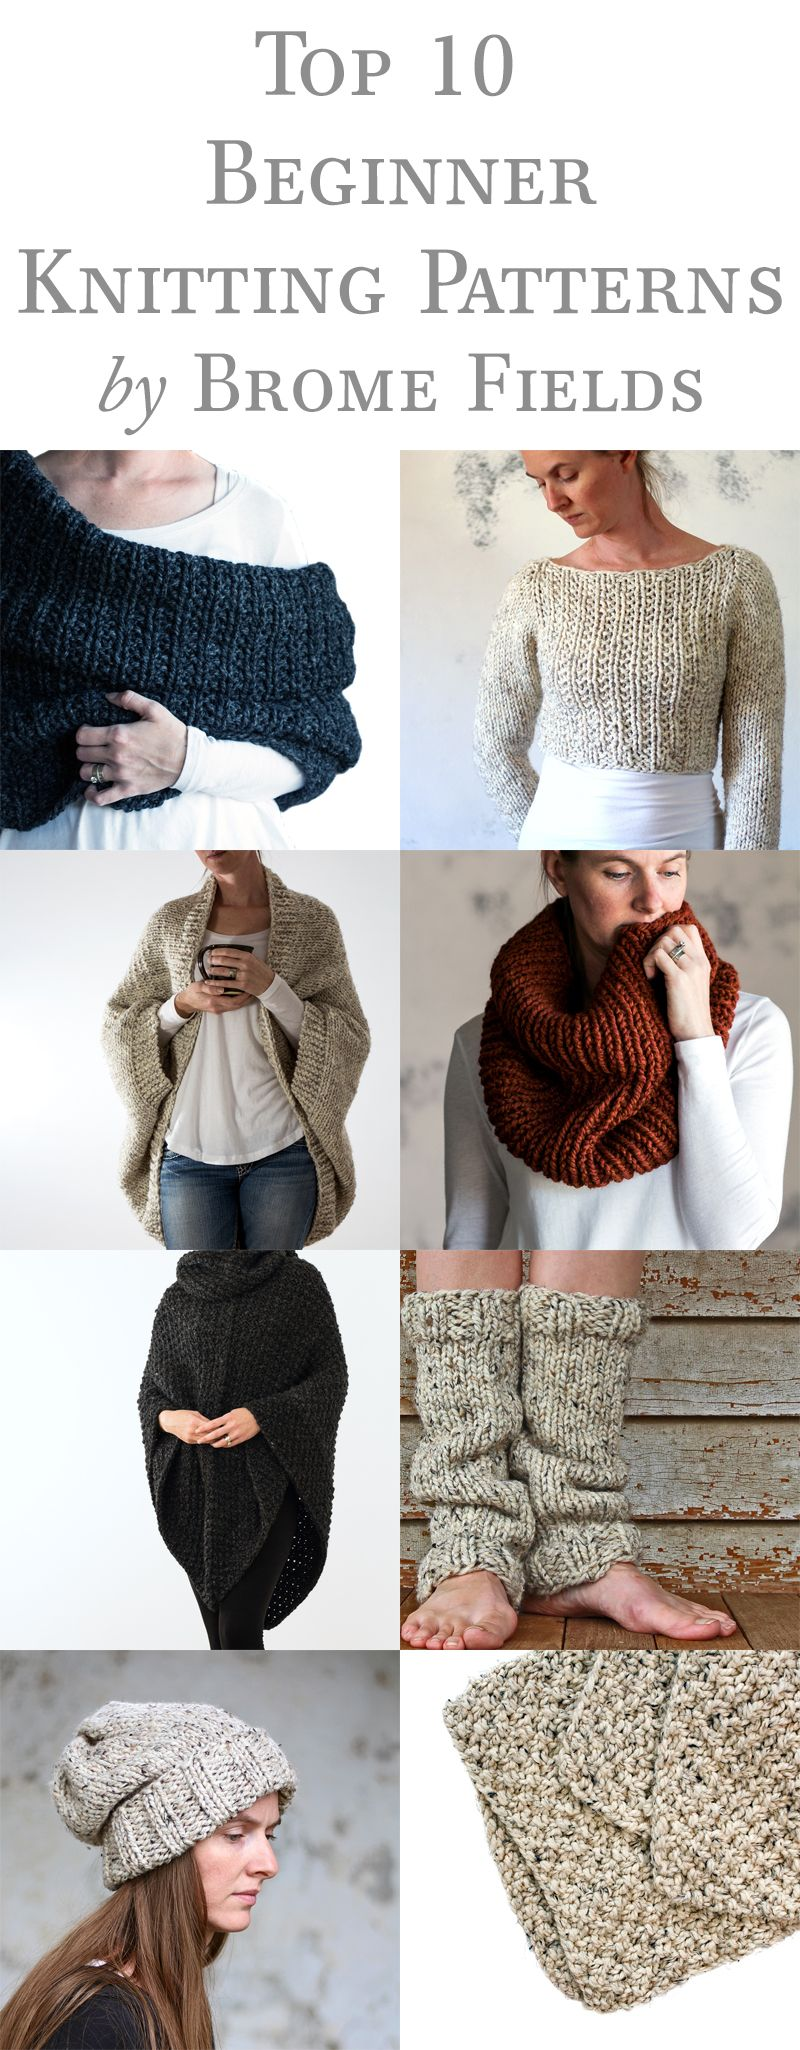 Top 10 Beginner Knitting Patterns